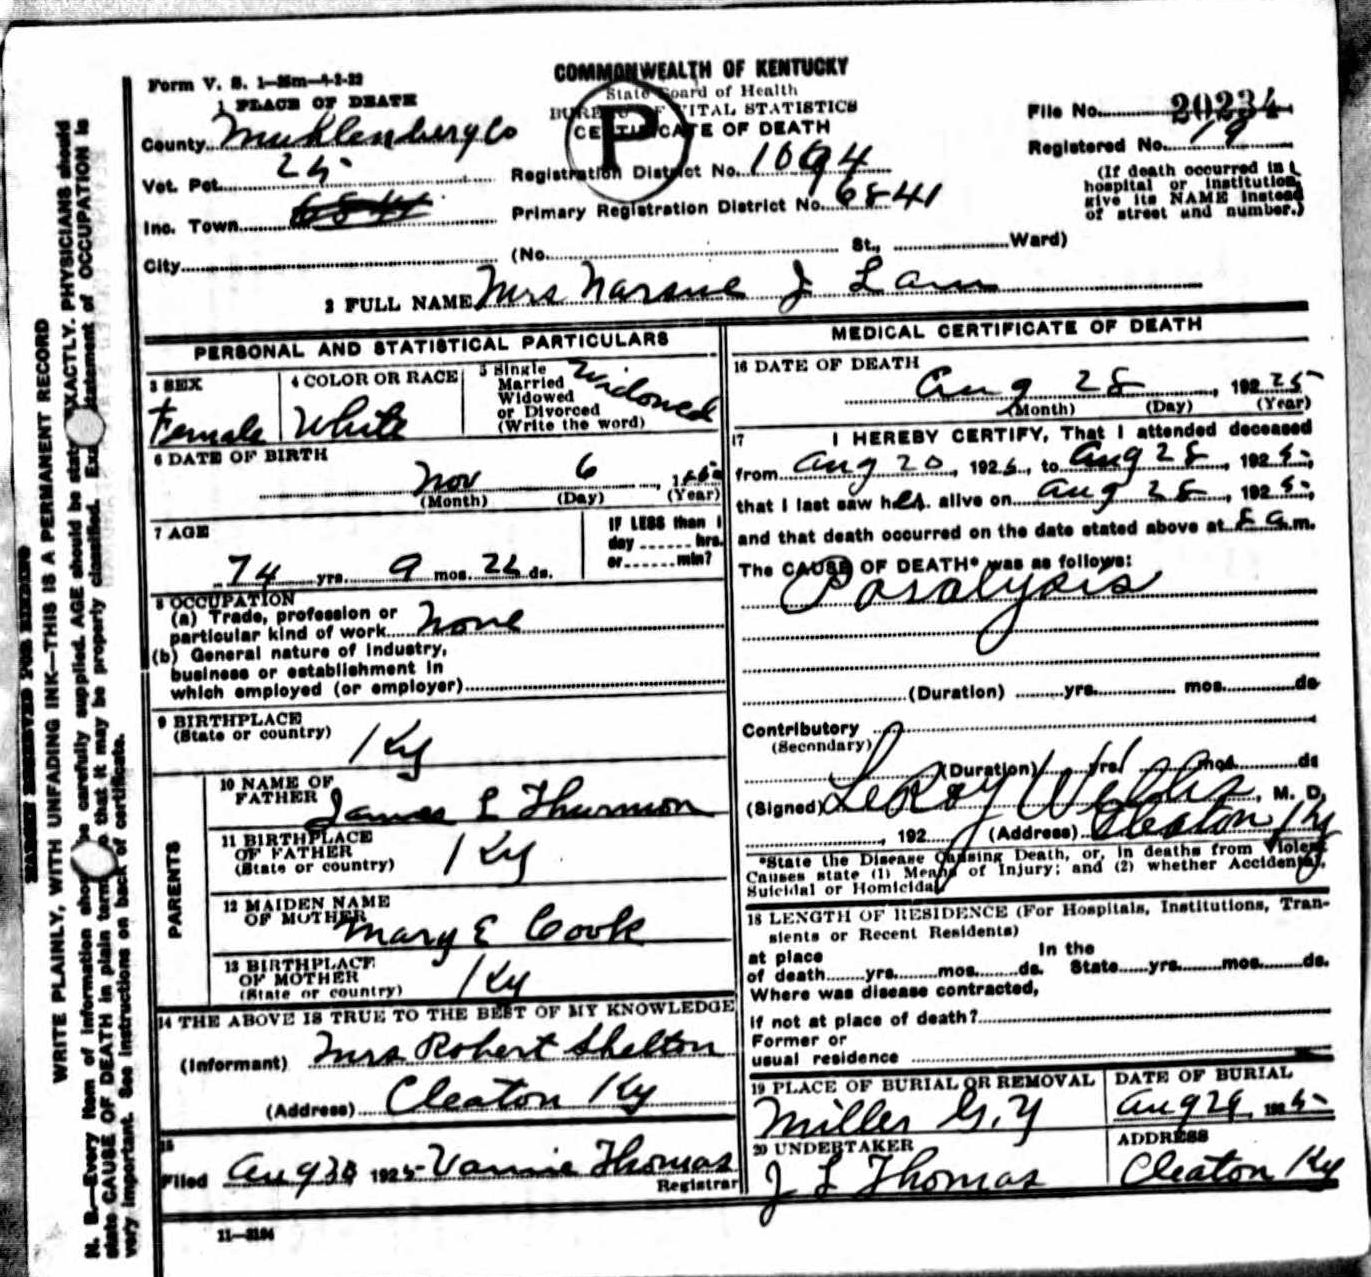 Death certificates l kentucky death certificate 20234 narsue j lam 1852 1925 james l thurman mary e cook mrs robert shelton cleaton muhlenberg kentucky miller 1betcityfo Image collections